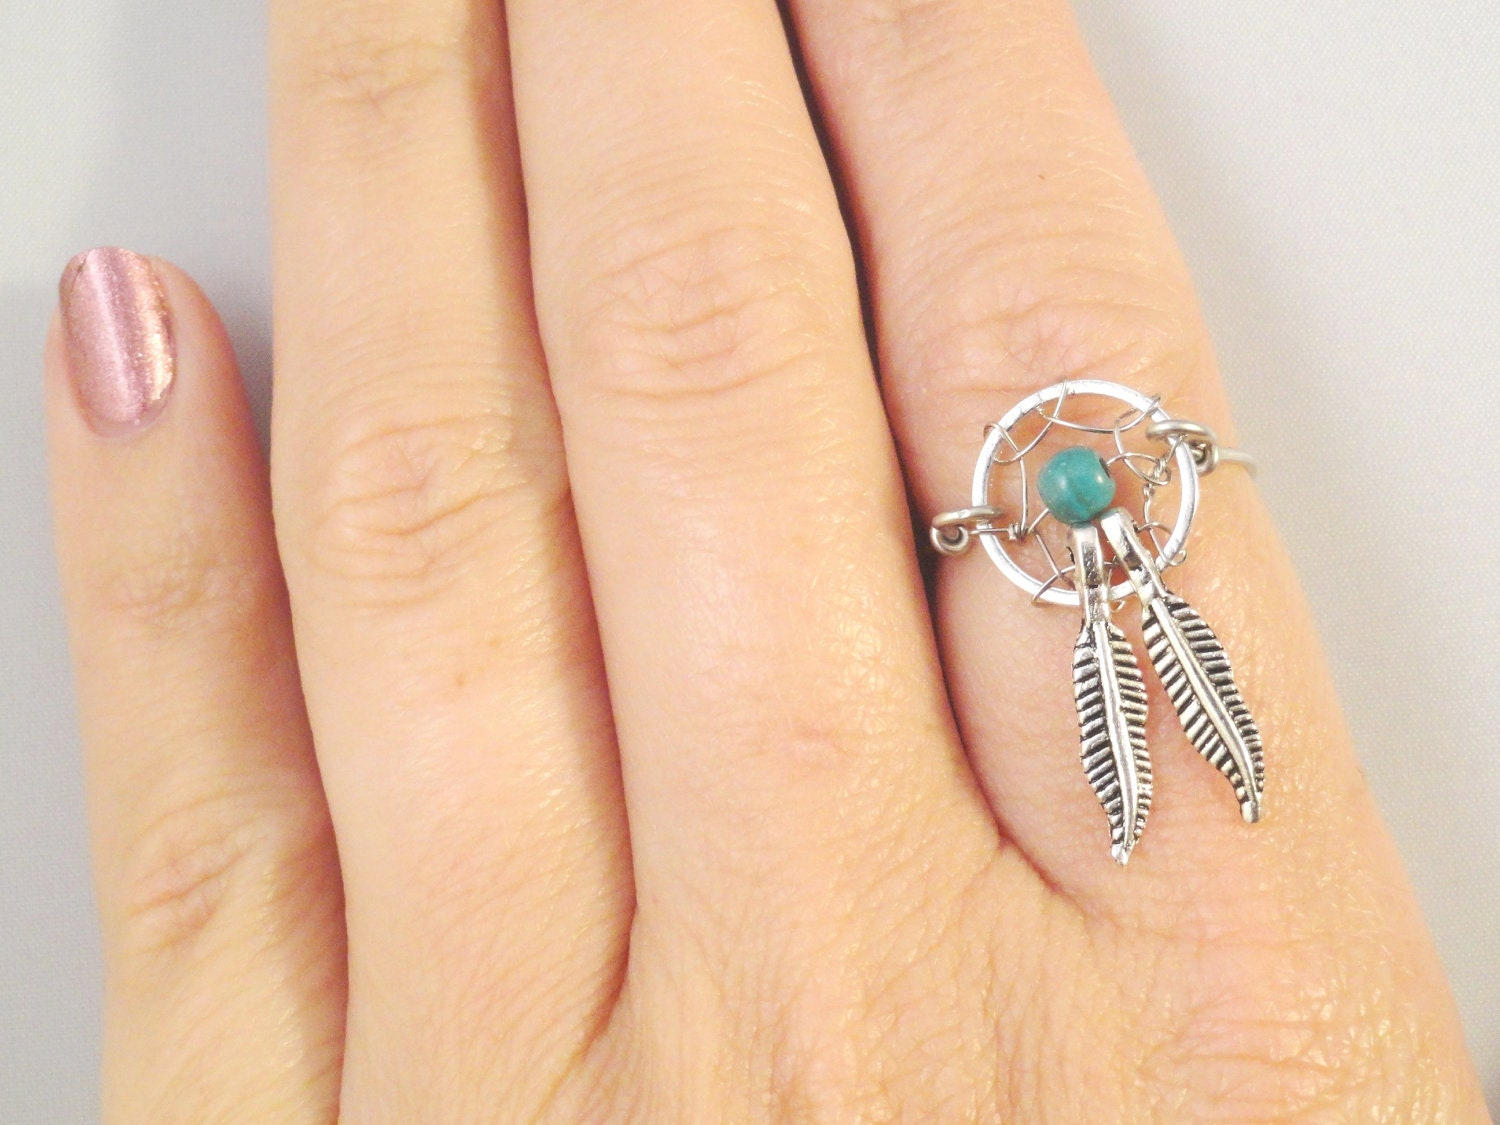 Dream catcher ring with feathers for How to make a double ring dreamcatcher